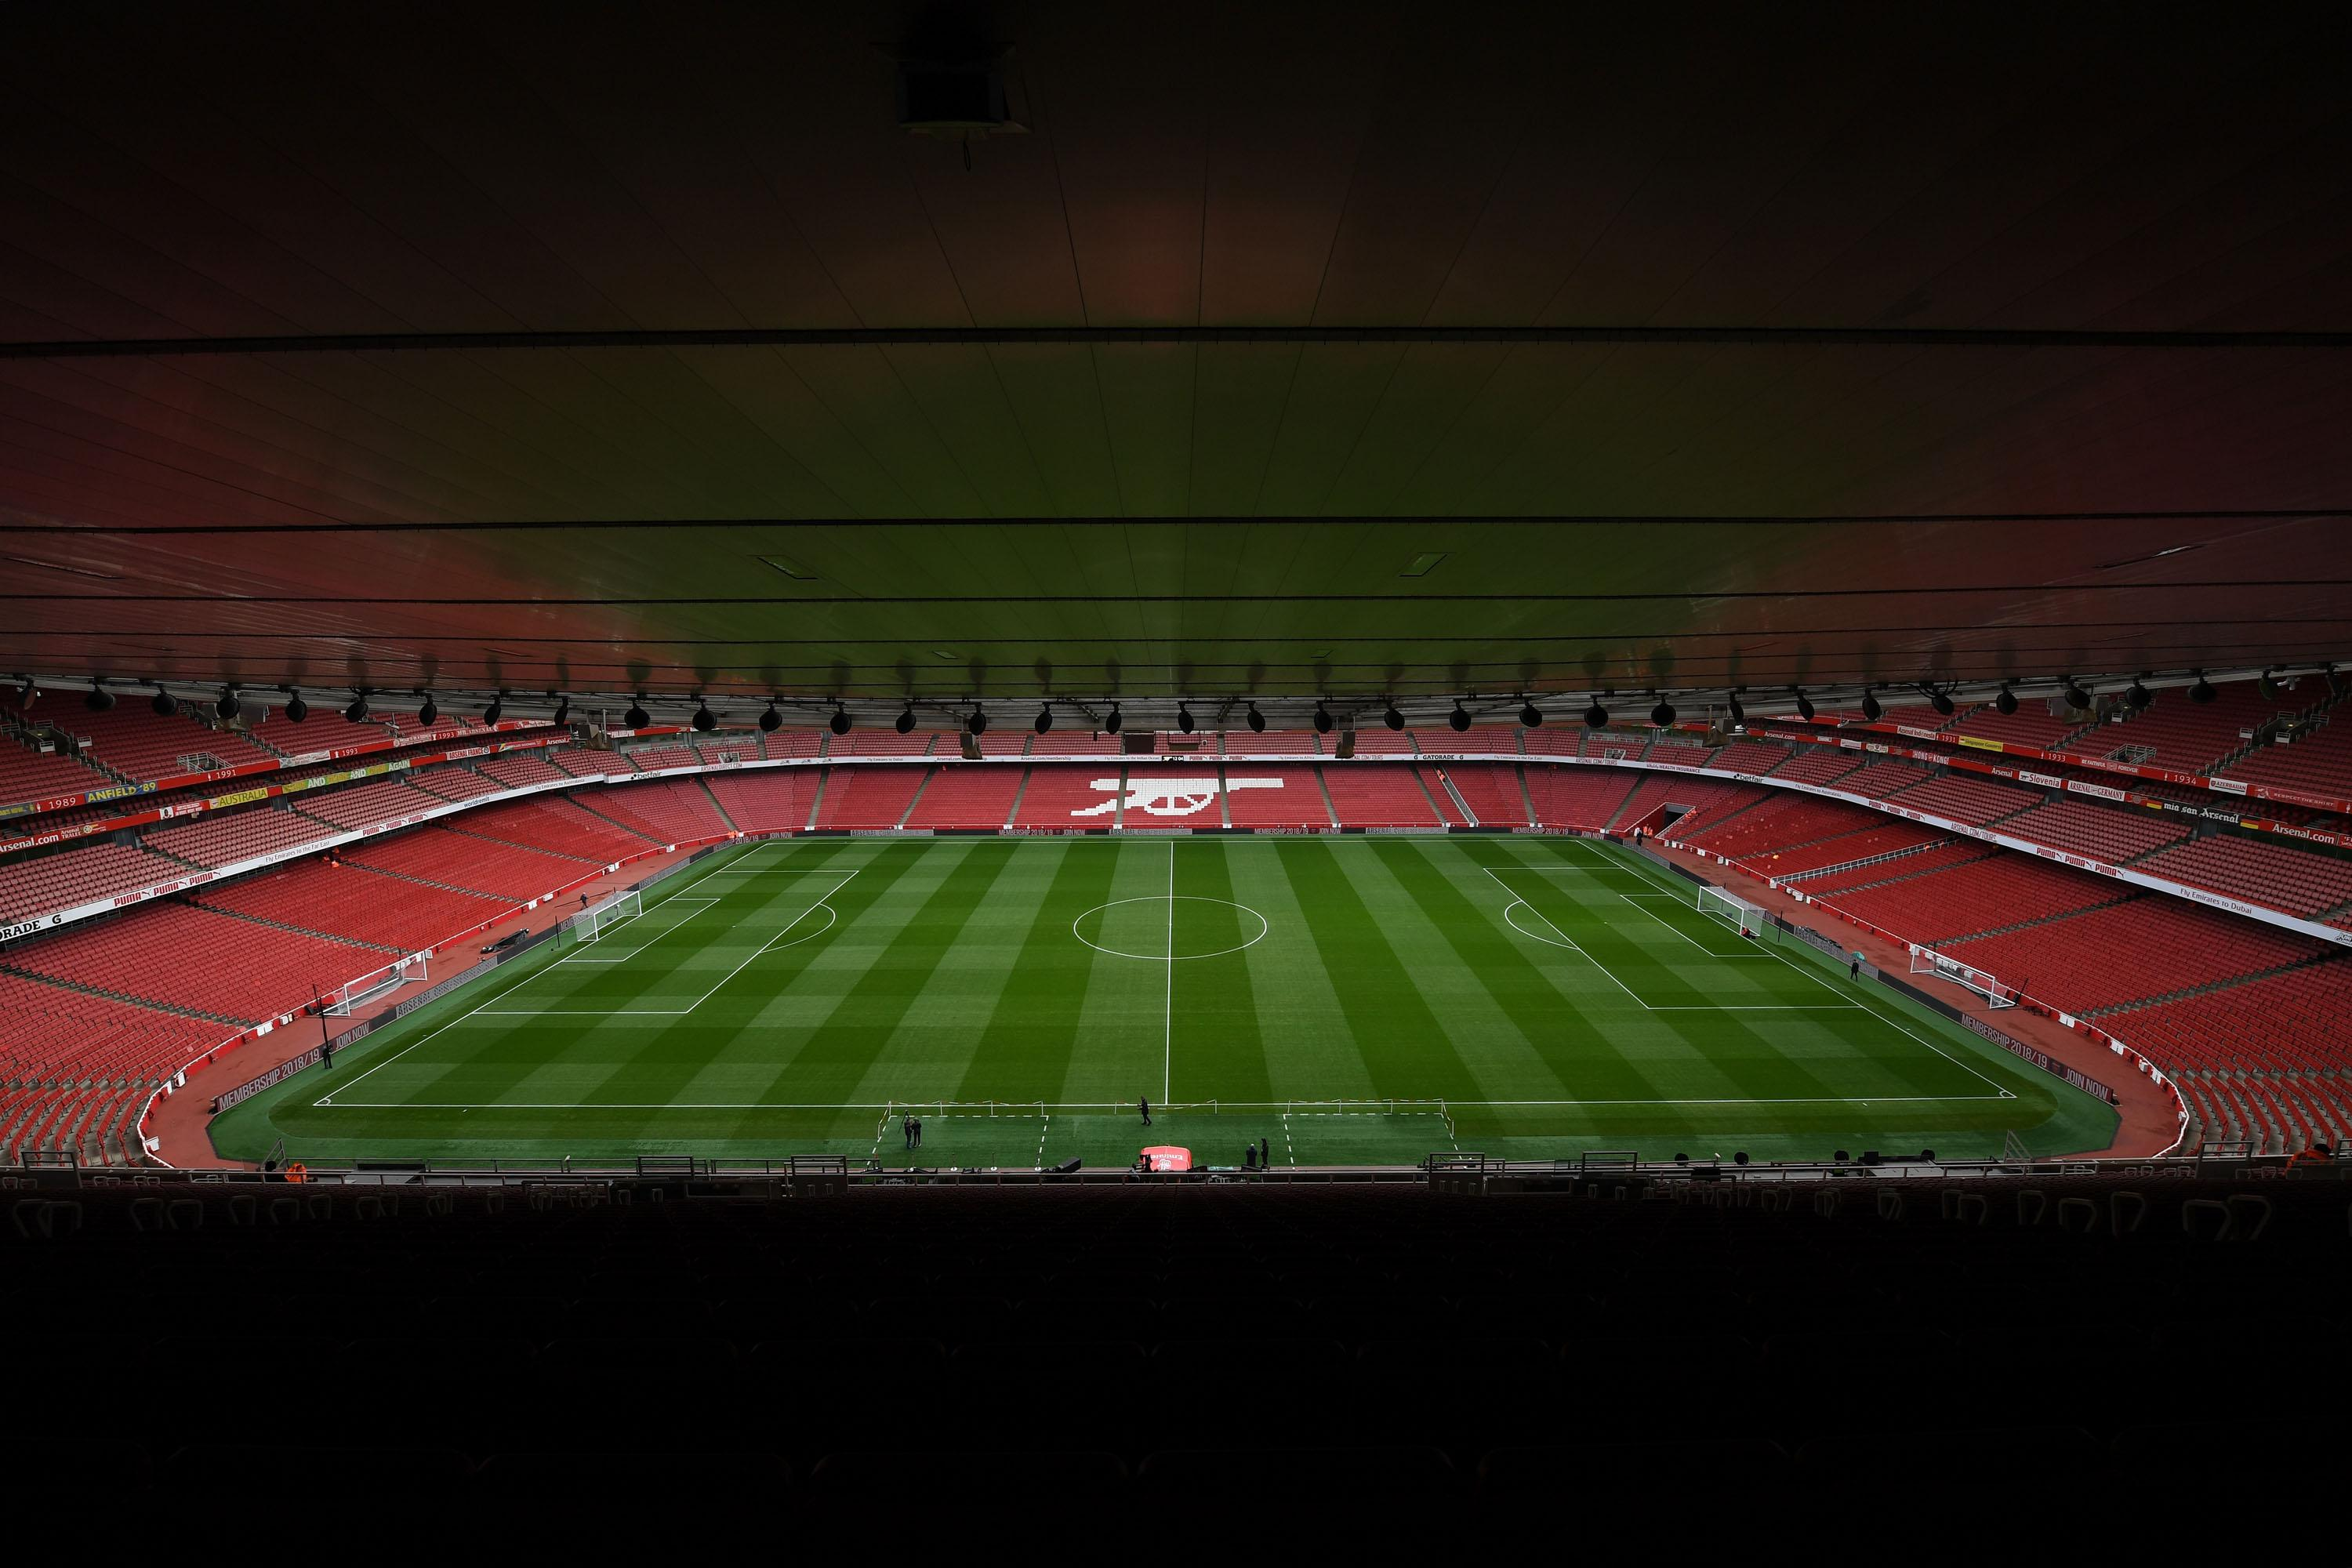 Arsenal v Stade Rennais F.C. Ticket Information